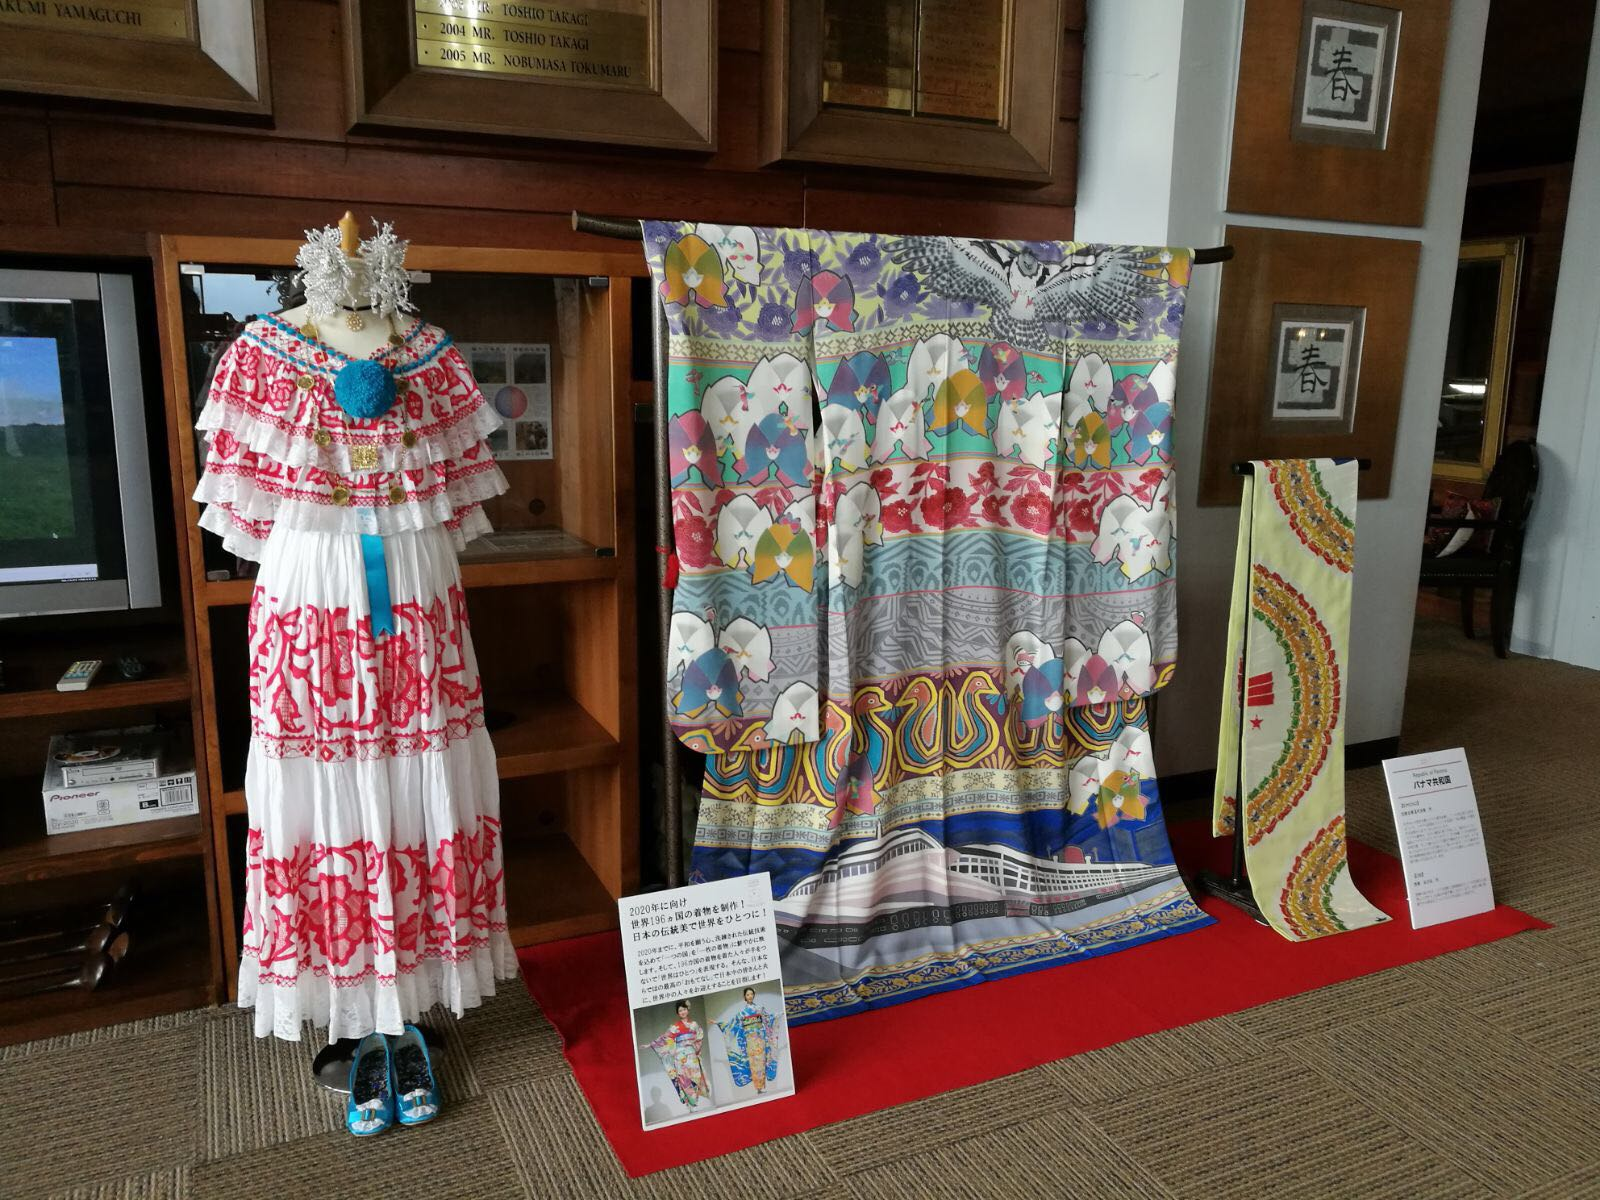 Pollera exhibited in combination with a Japanese Kimono designed with various aspects of Panamanian culture, such as the Panama Canal, Mola, Panama's national flower Espítiru Santo, and Harpy eagle